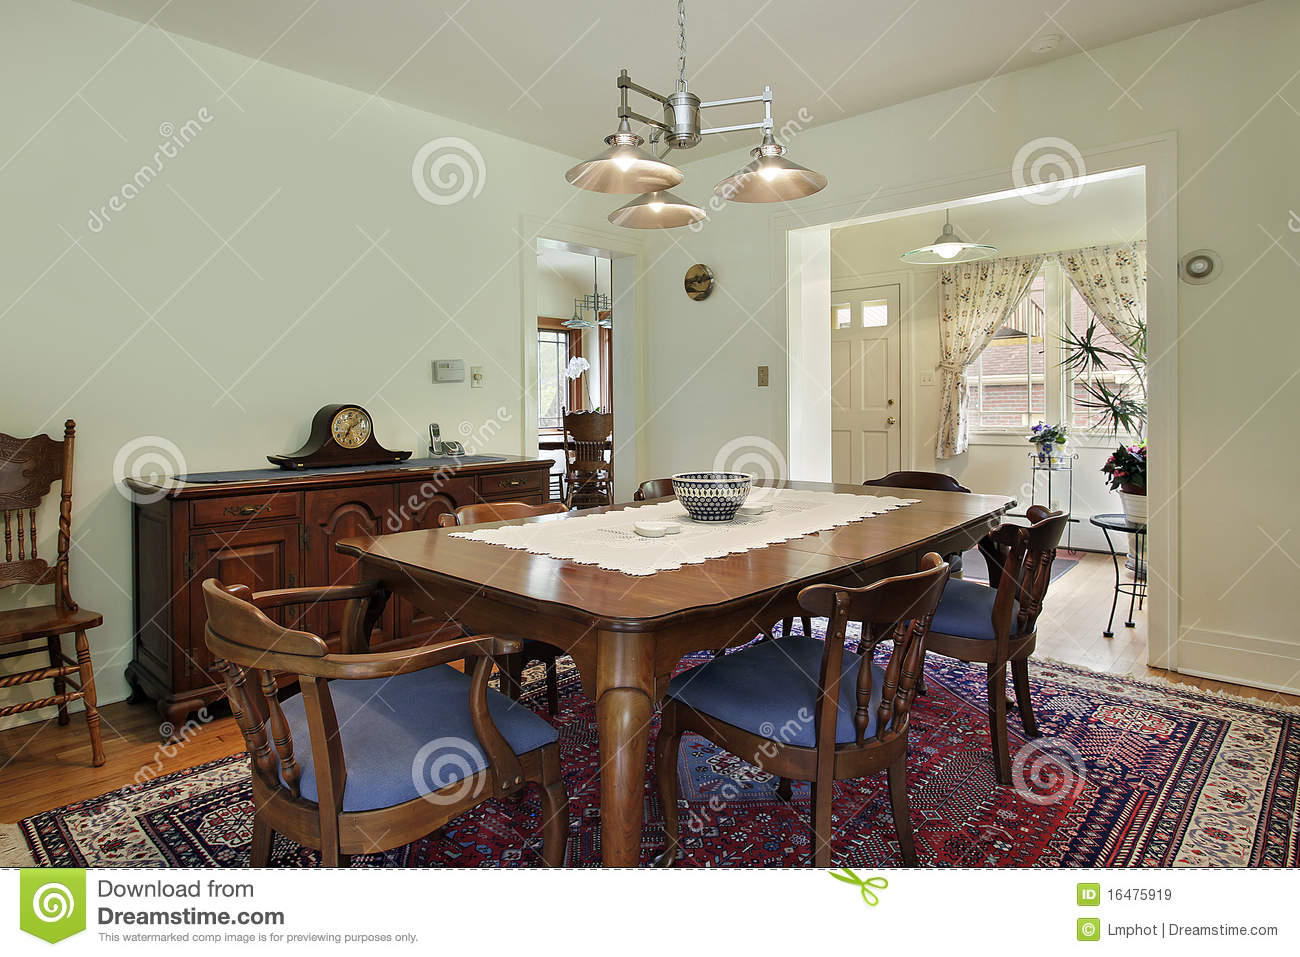 Dining room with lime green walls royalty free stock for Lime green dining room ideas